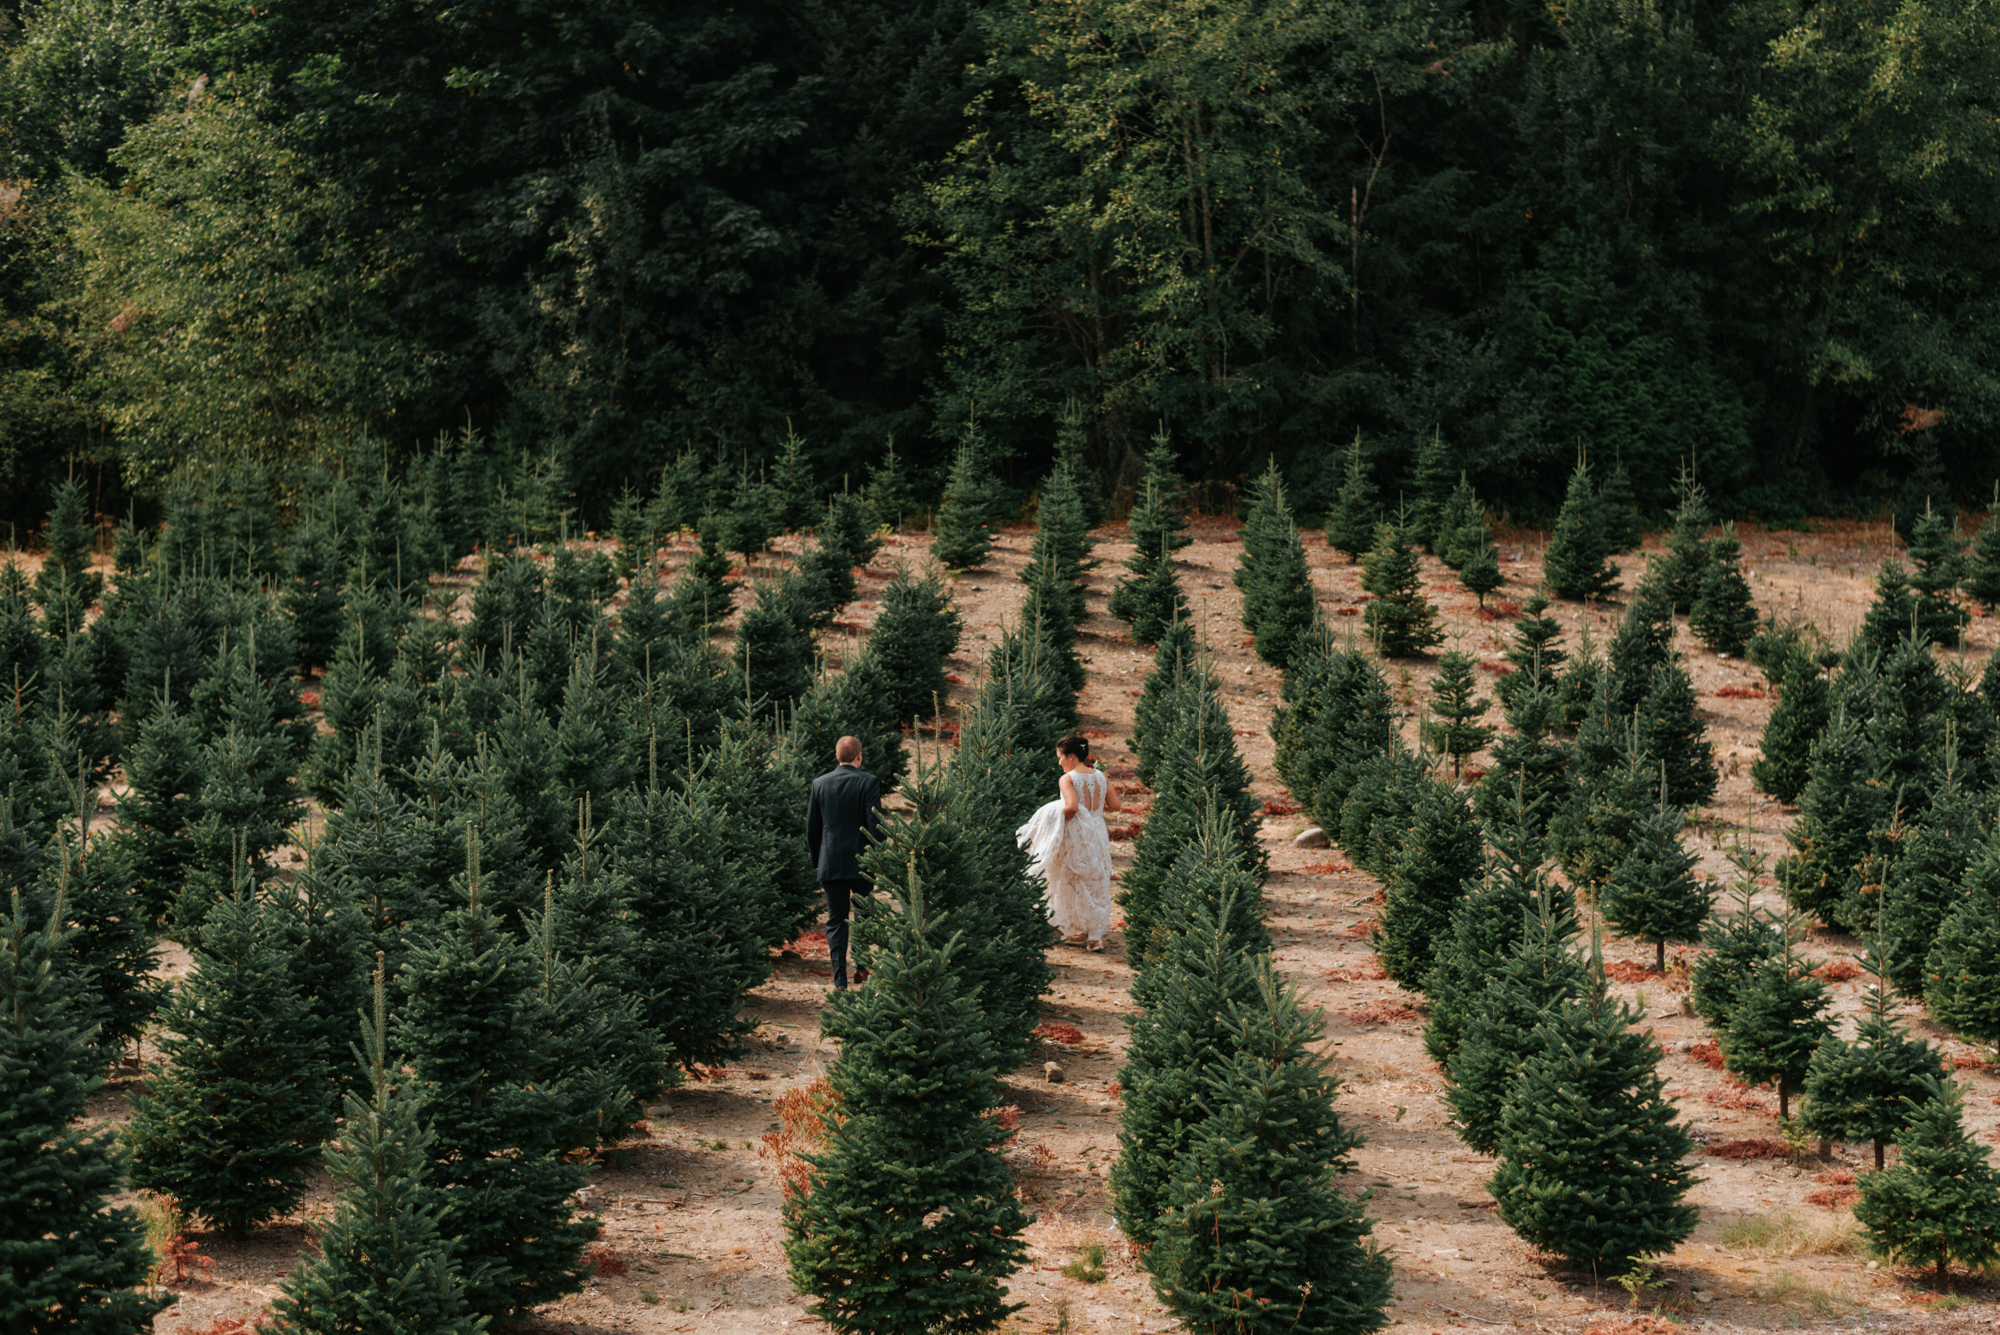 Trinity Tree Farm - Issaquah, WAThis rustic tree farm is gorgeous year-round for both indoor and outdoor weddings.Great getting ready spaces for both parties, large property for portraits, beautiful indoor space if weather doesn't permit outdoor events.